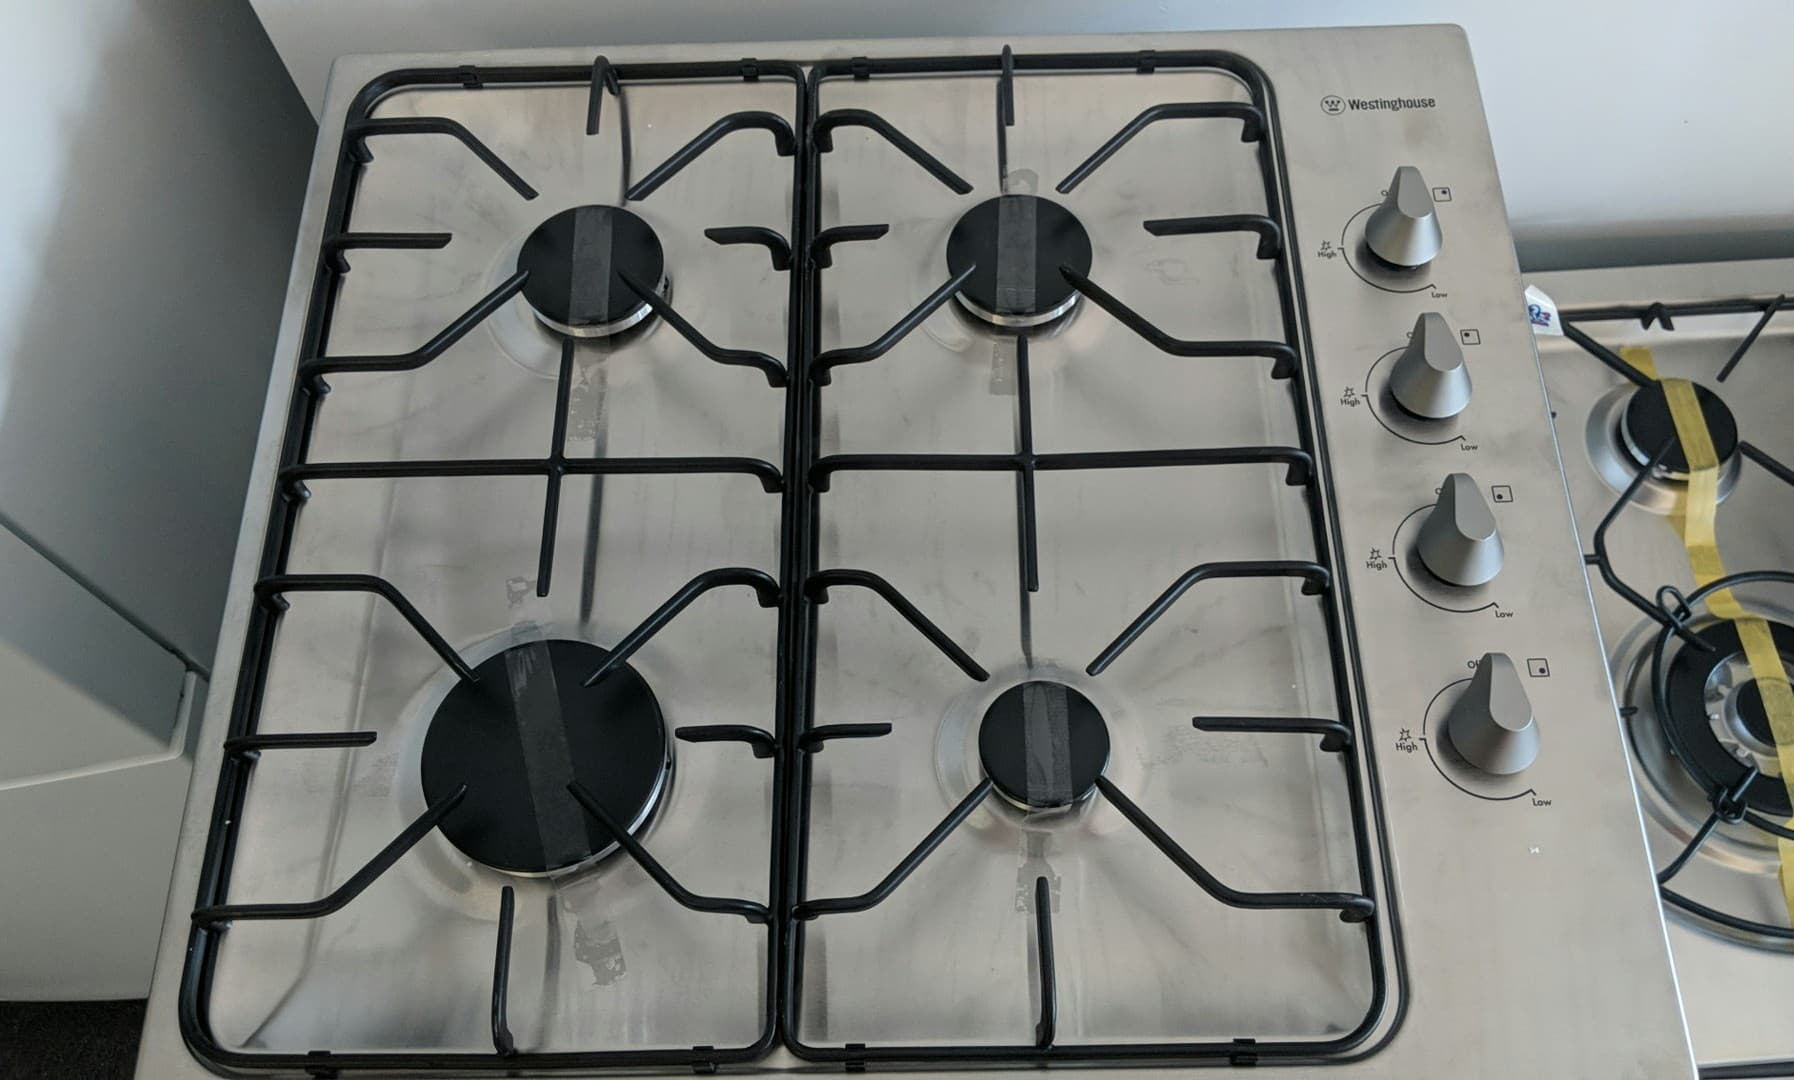 Westinghouse WHG640SB Gas Cooktop. Doug Smith Spares Pymble Nov 18